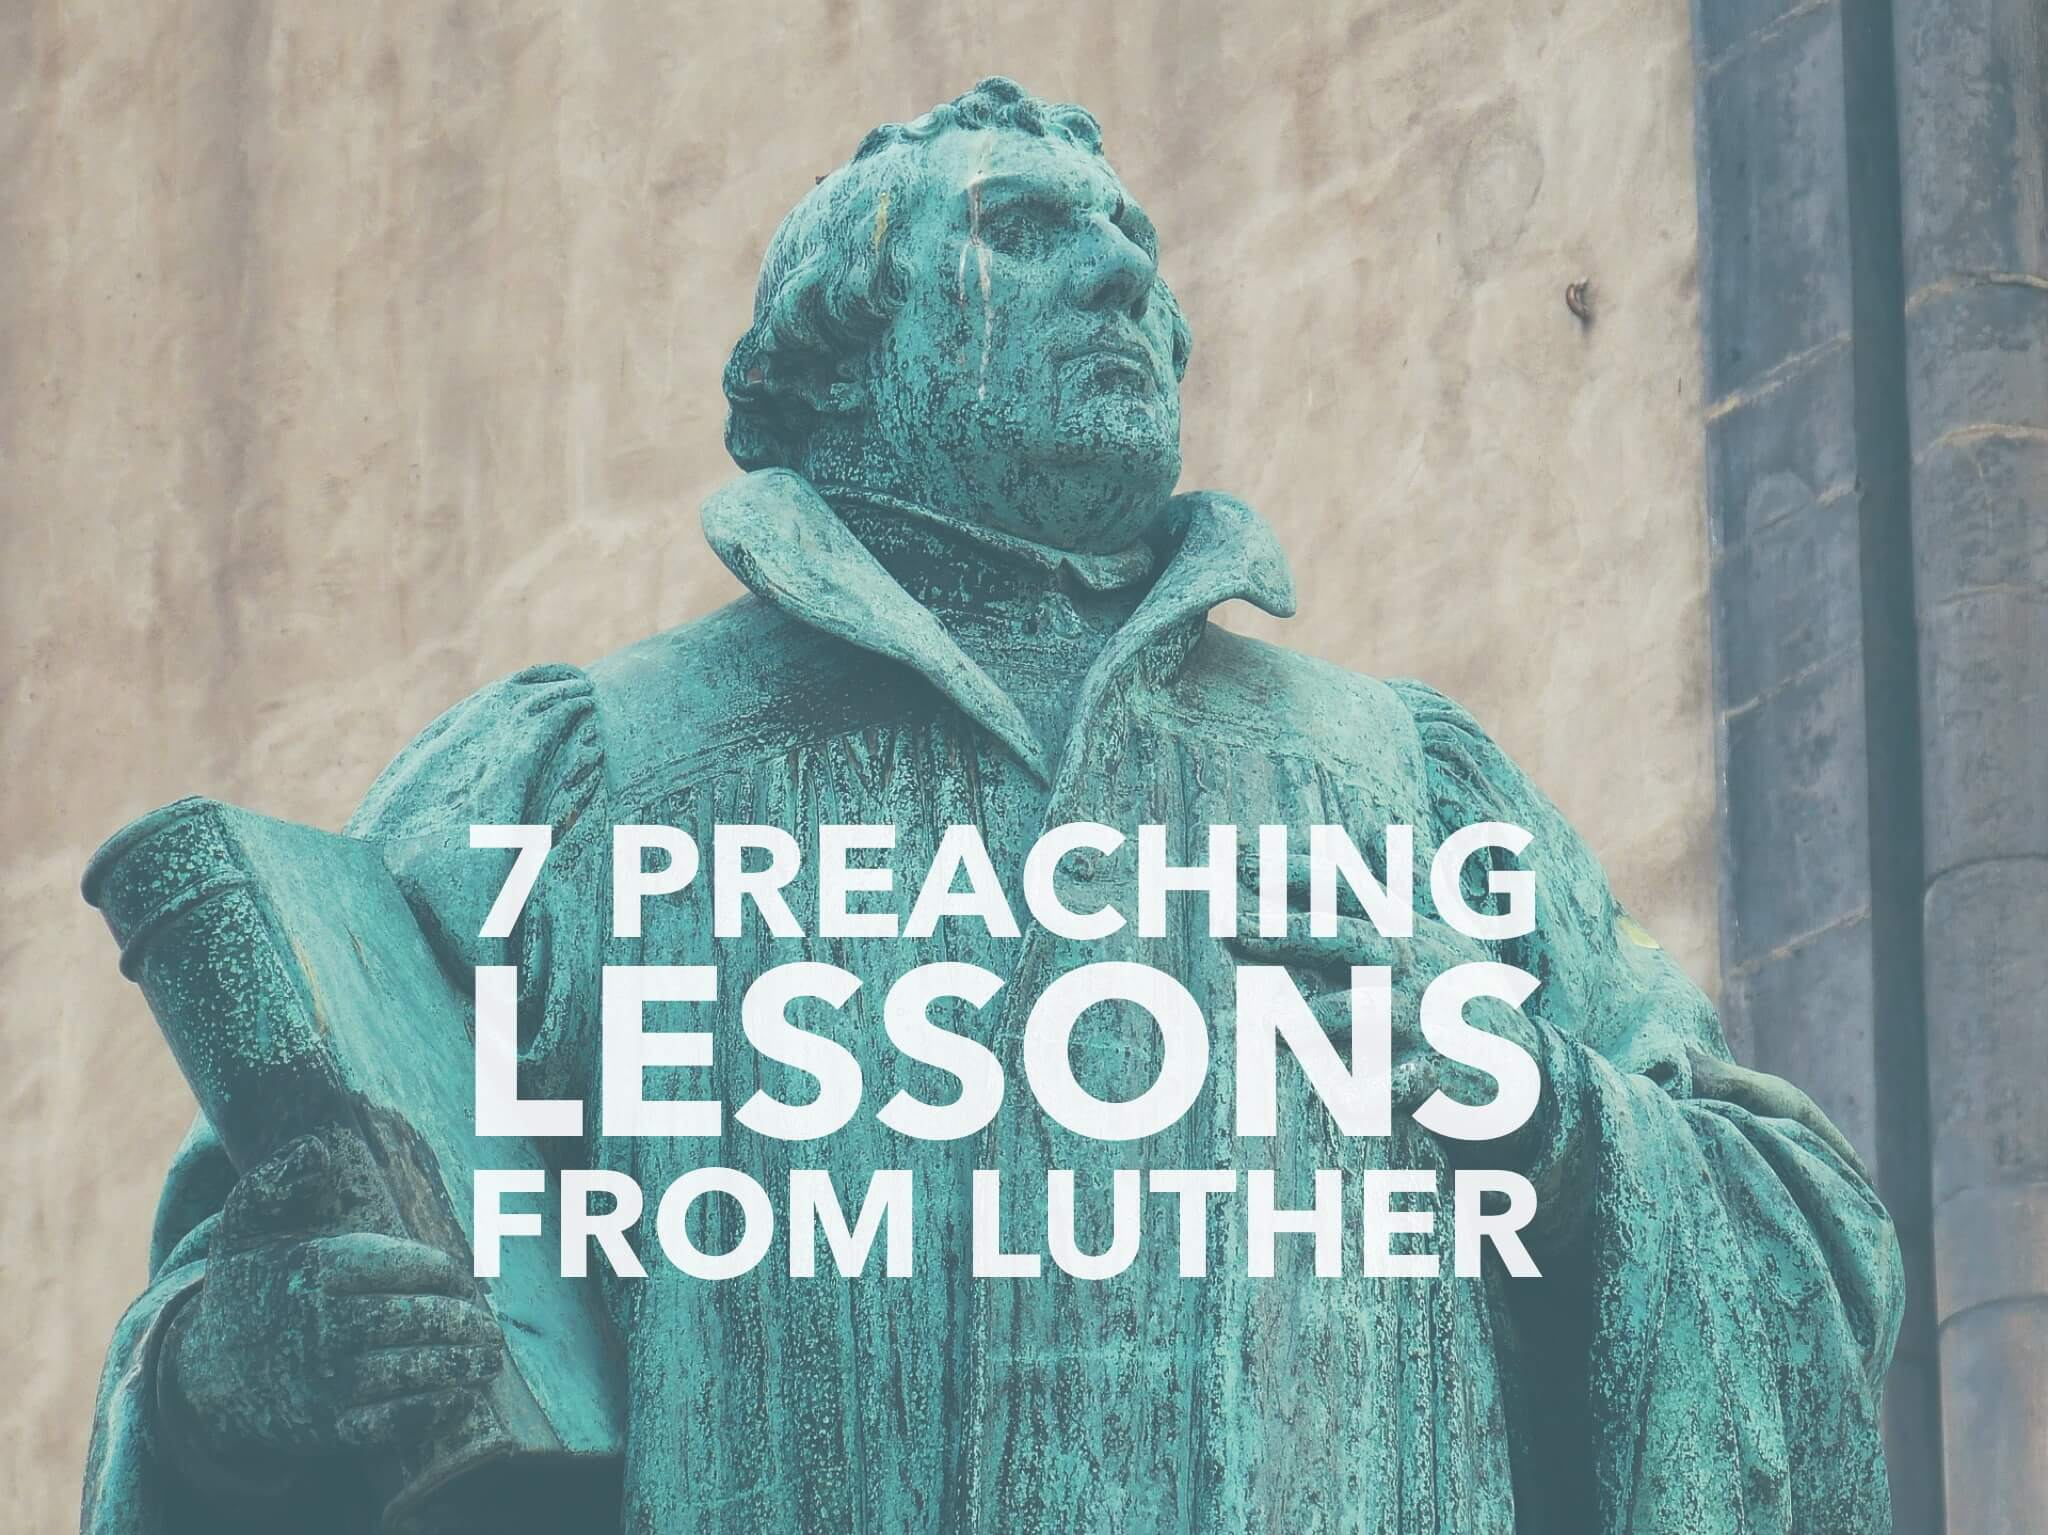 Preaching lessons from Martin Luther